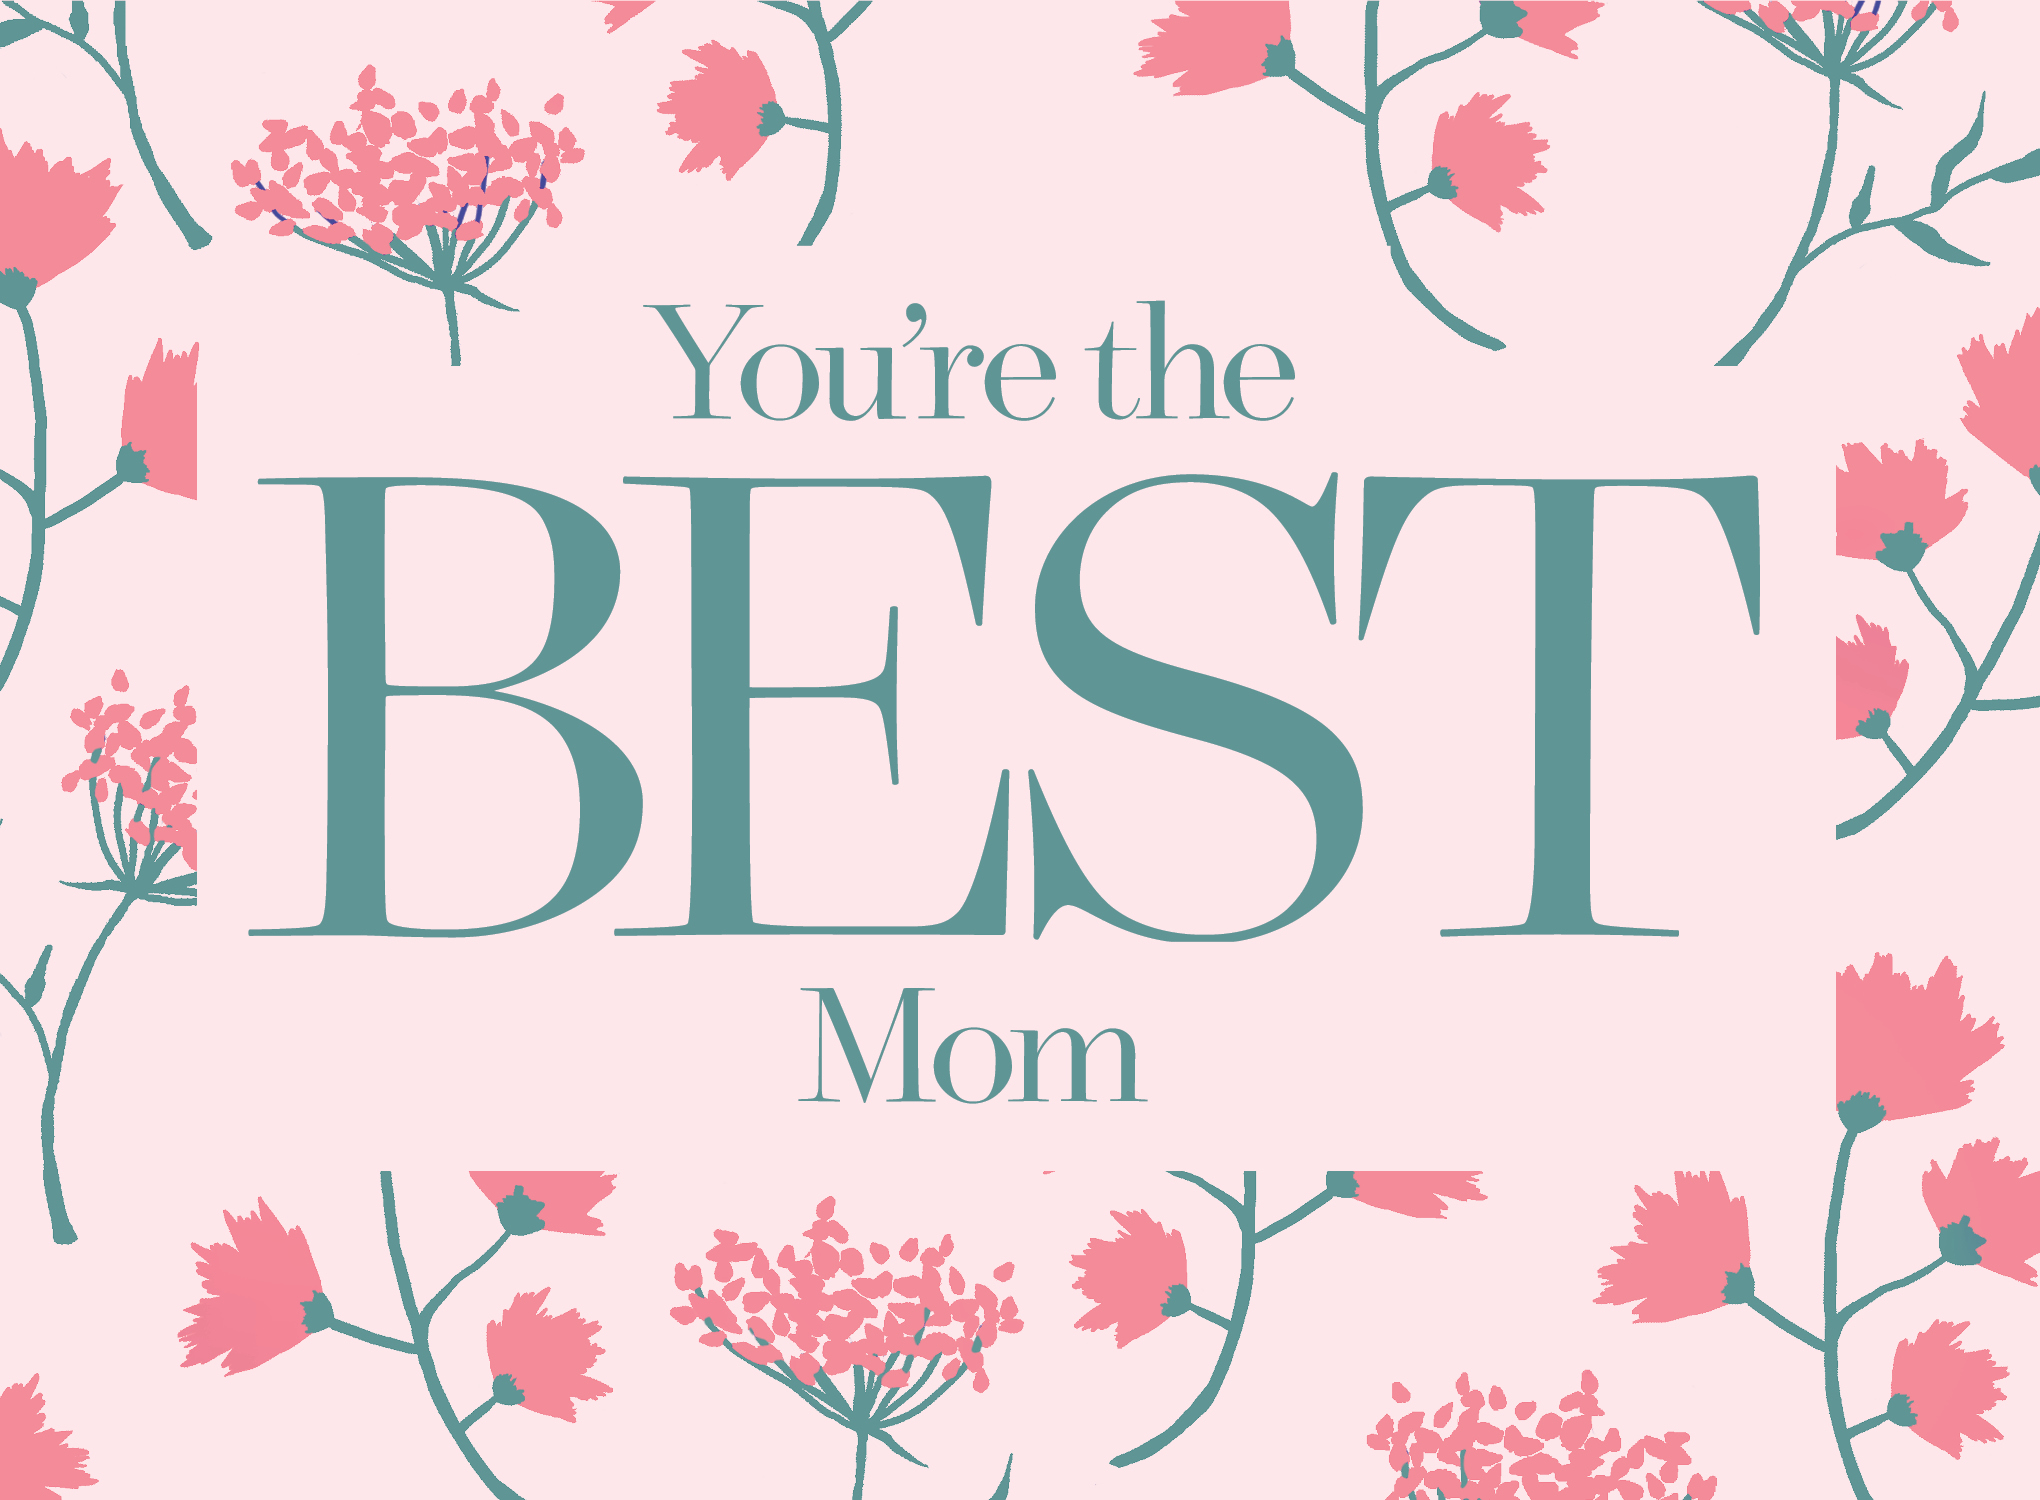 You're the Best Mom mother's day card